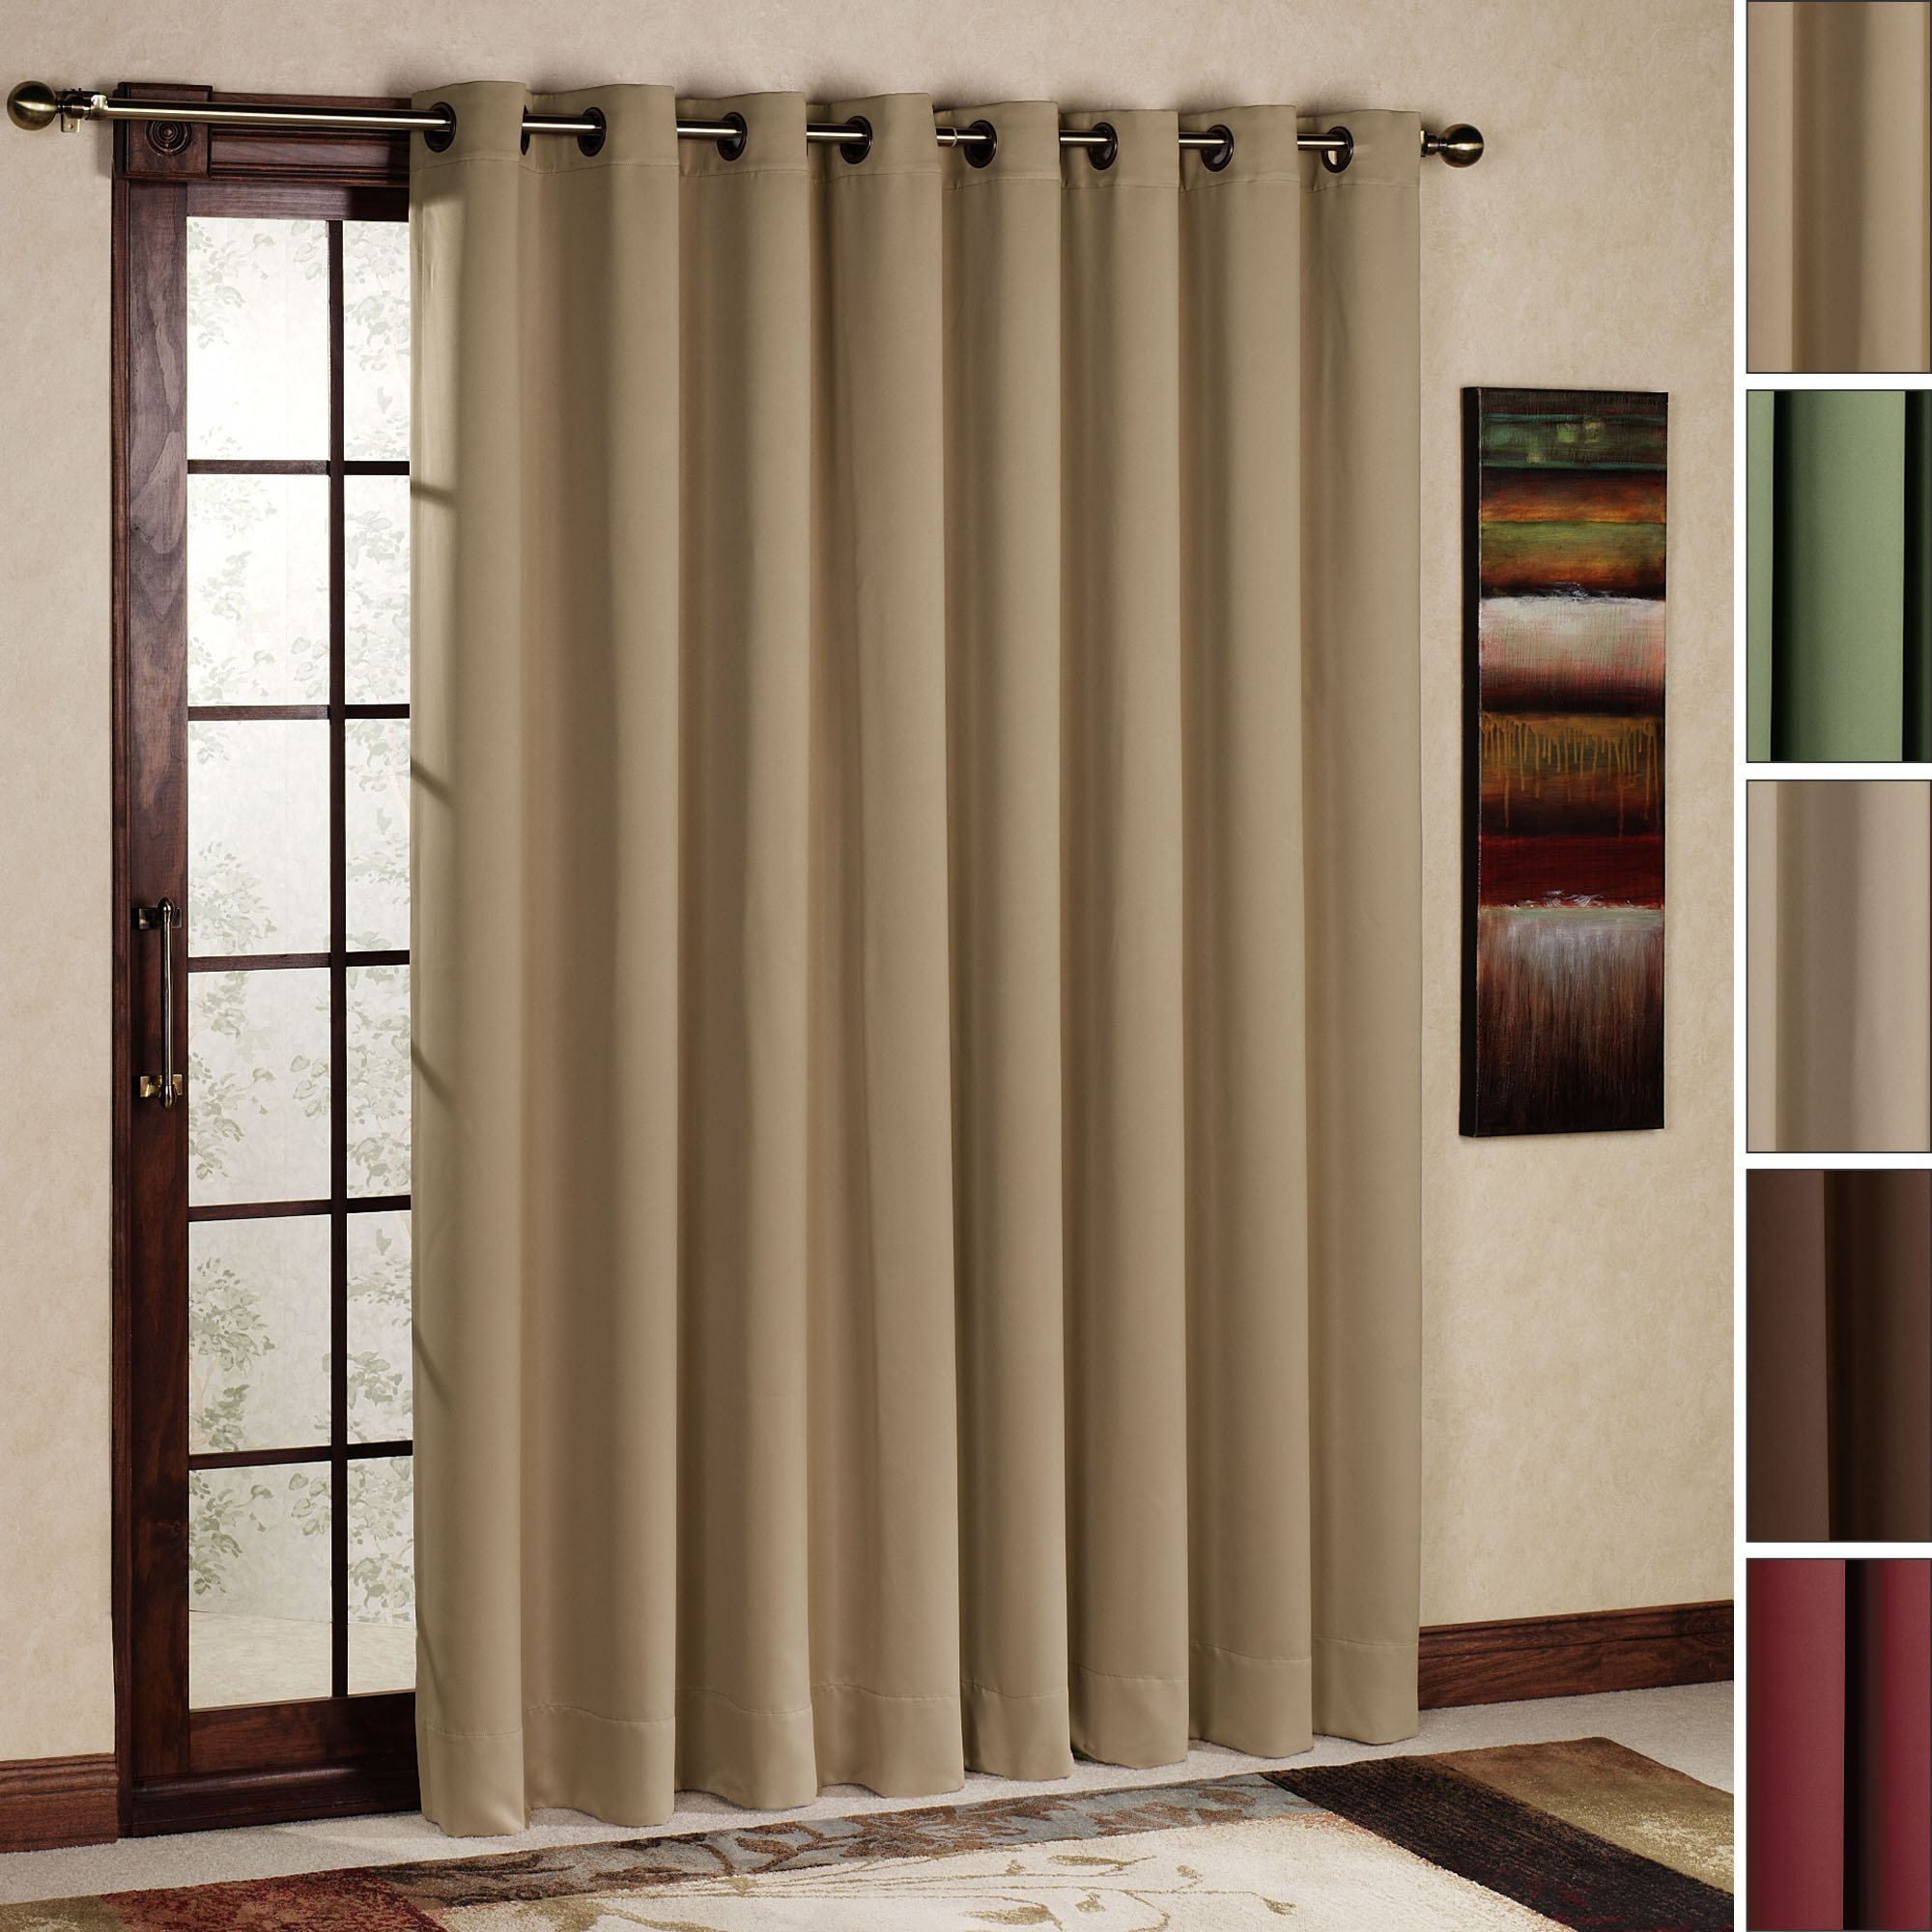 : Grey Patio Door Curtain With Awesome Rod